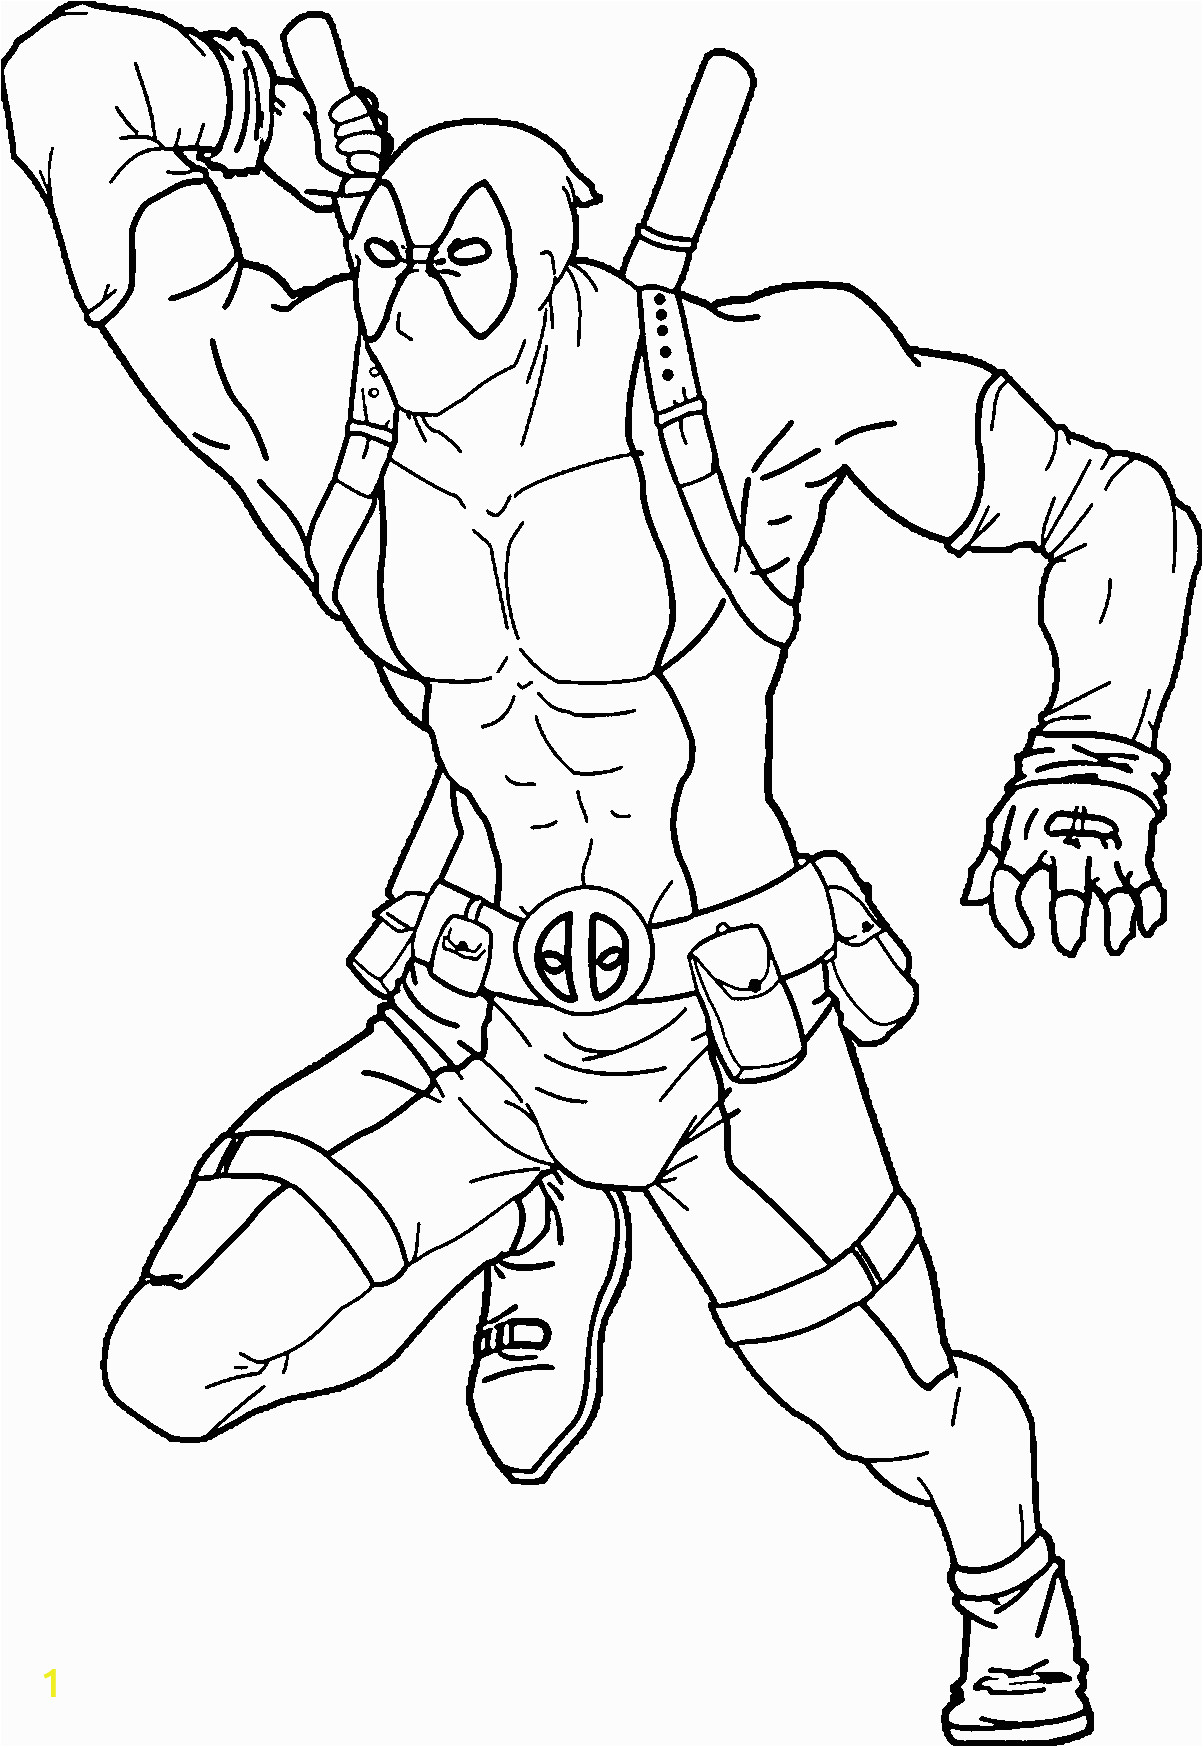 a84b8dd369afbcab b3a9ad1c9b3 28 collection of deadpool coloring pages pdf high quality free 1203 1747